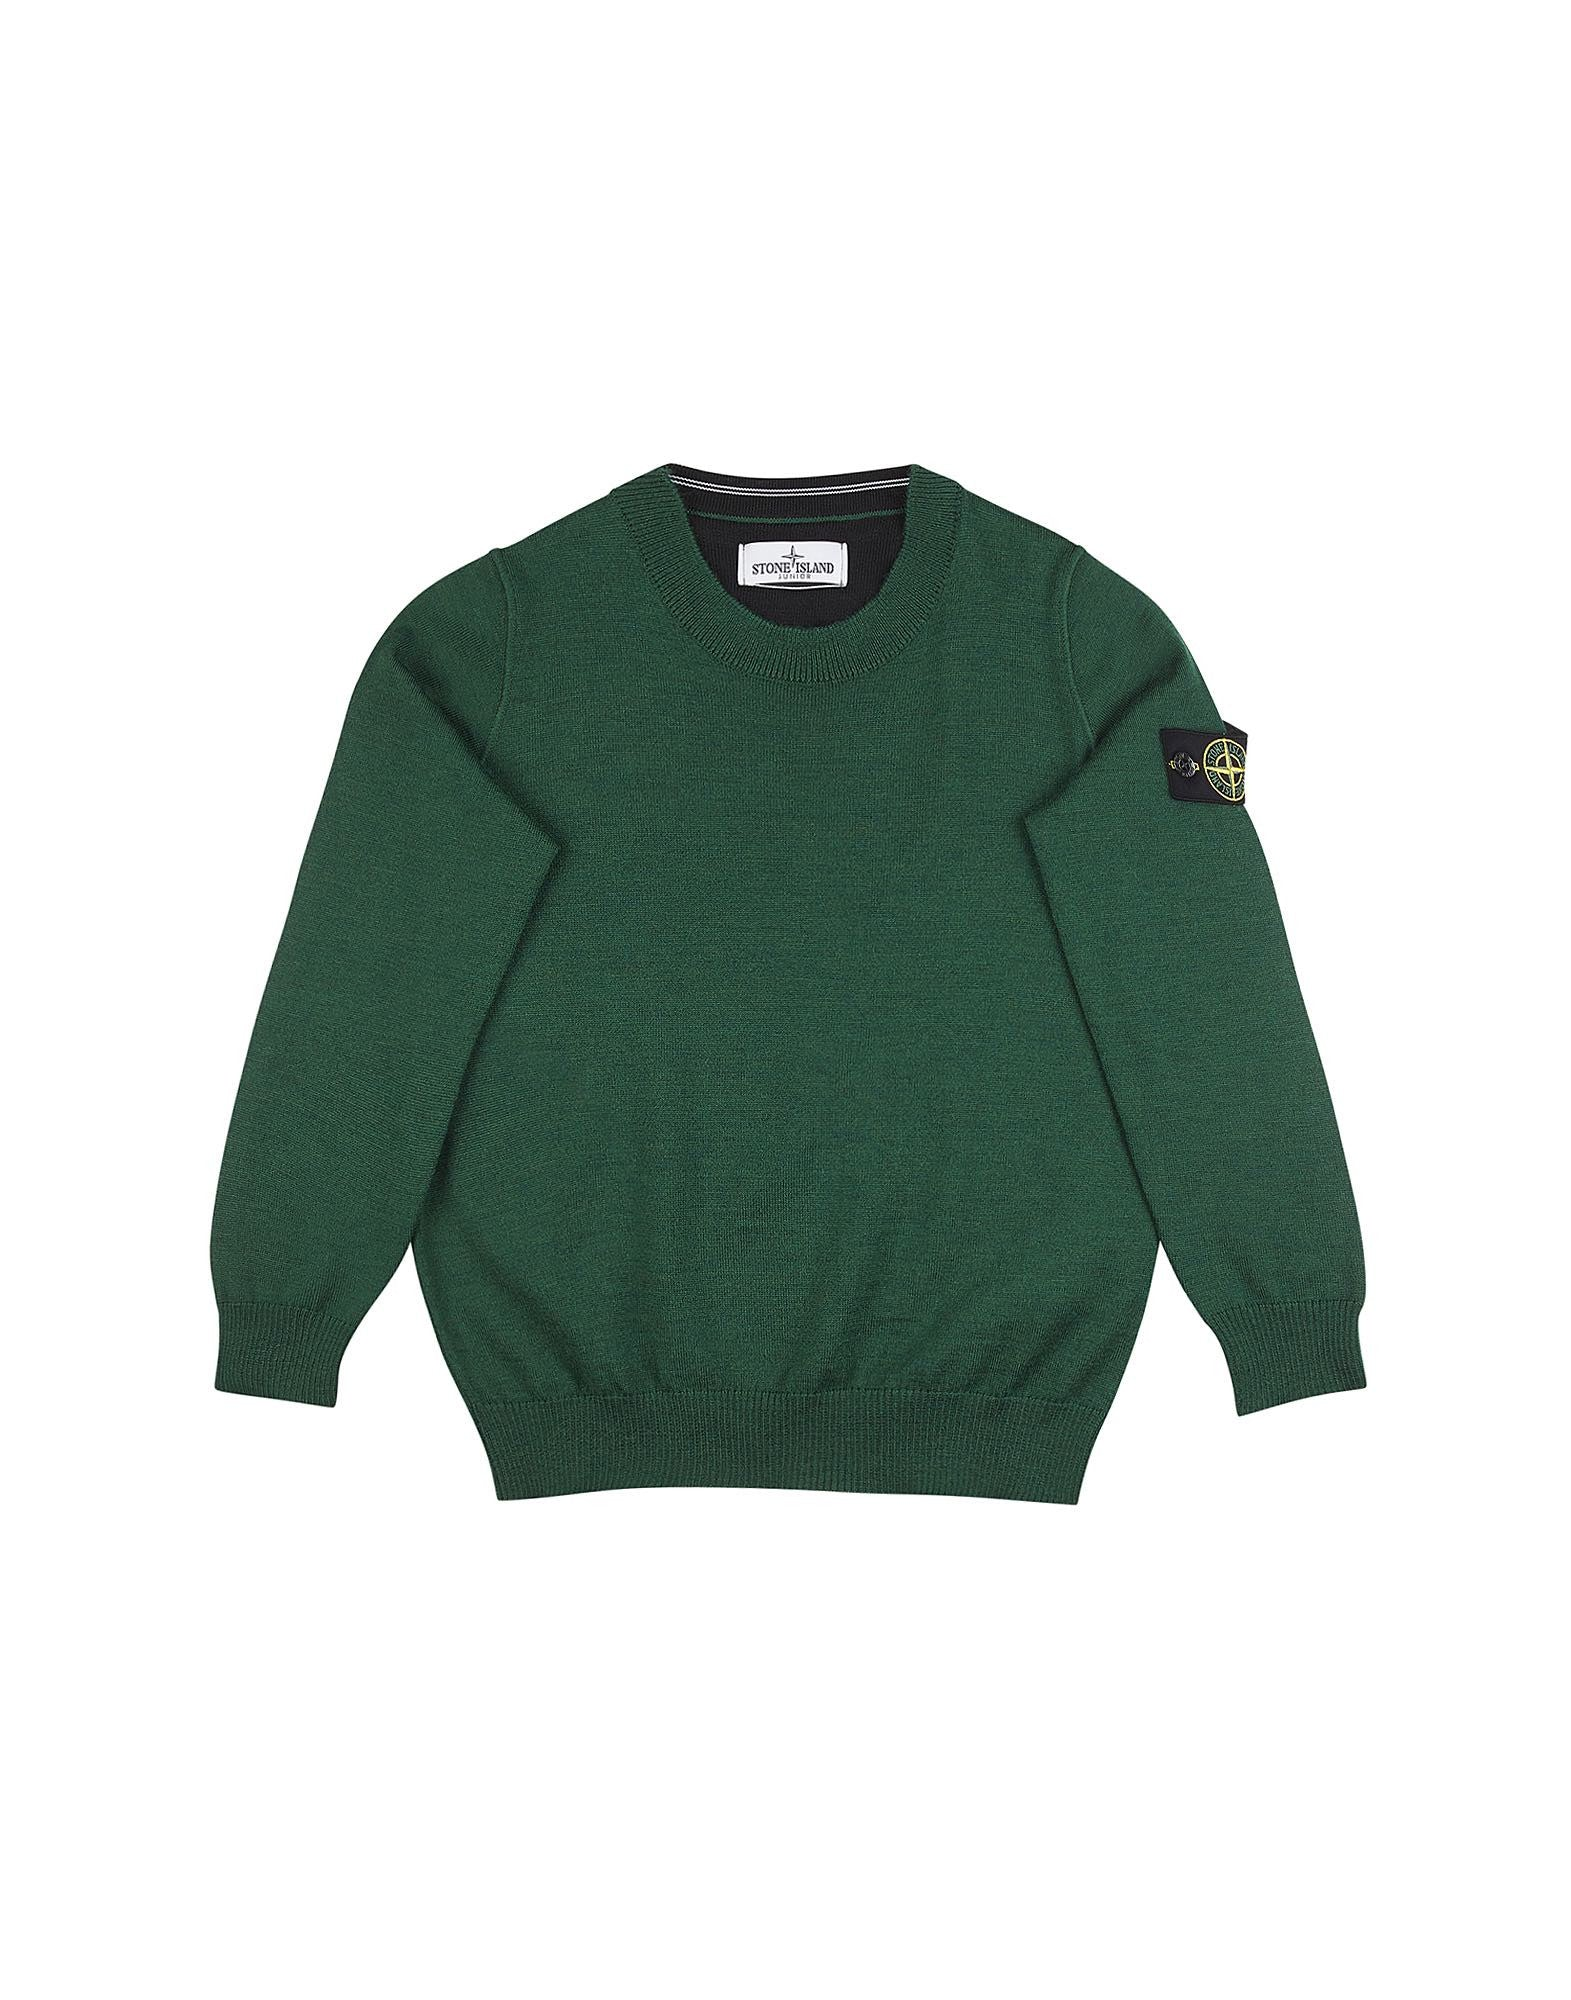 505A4 Wool Sweater in Green